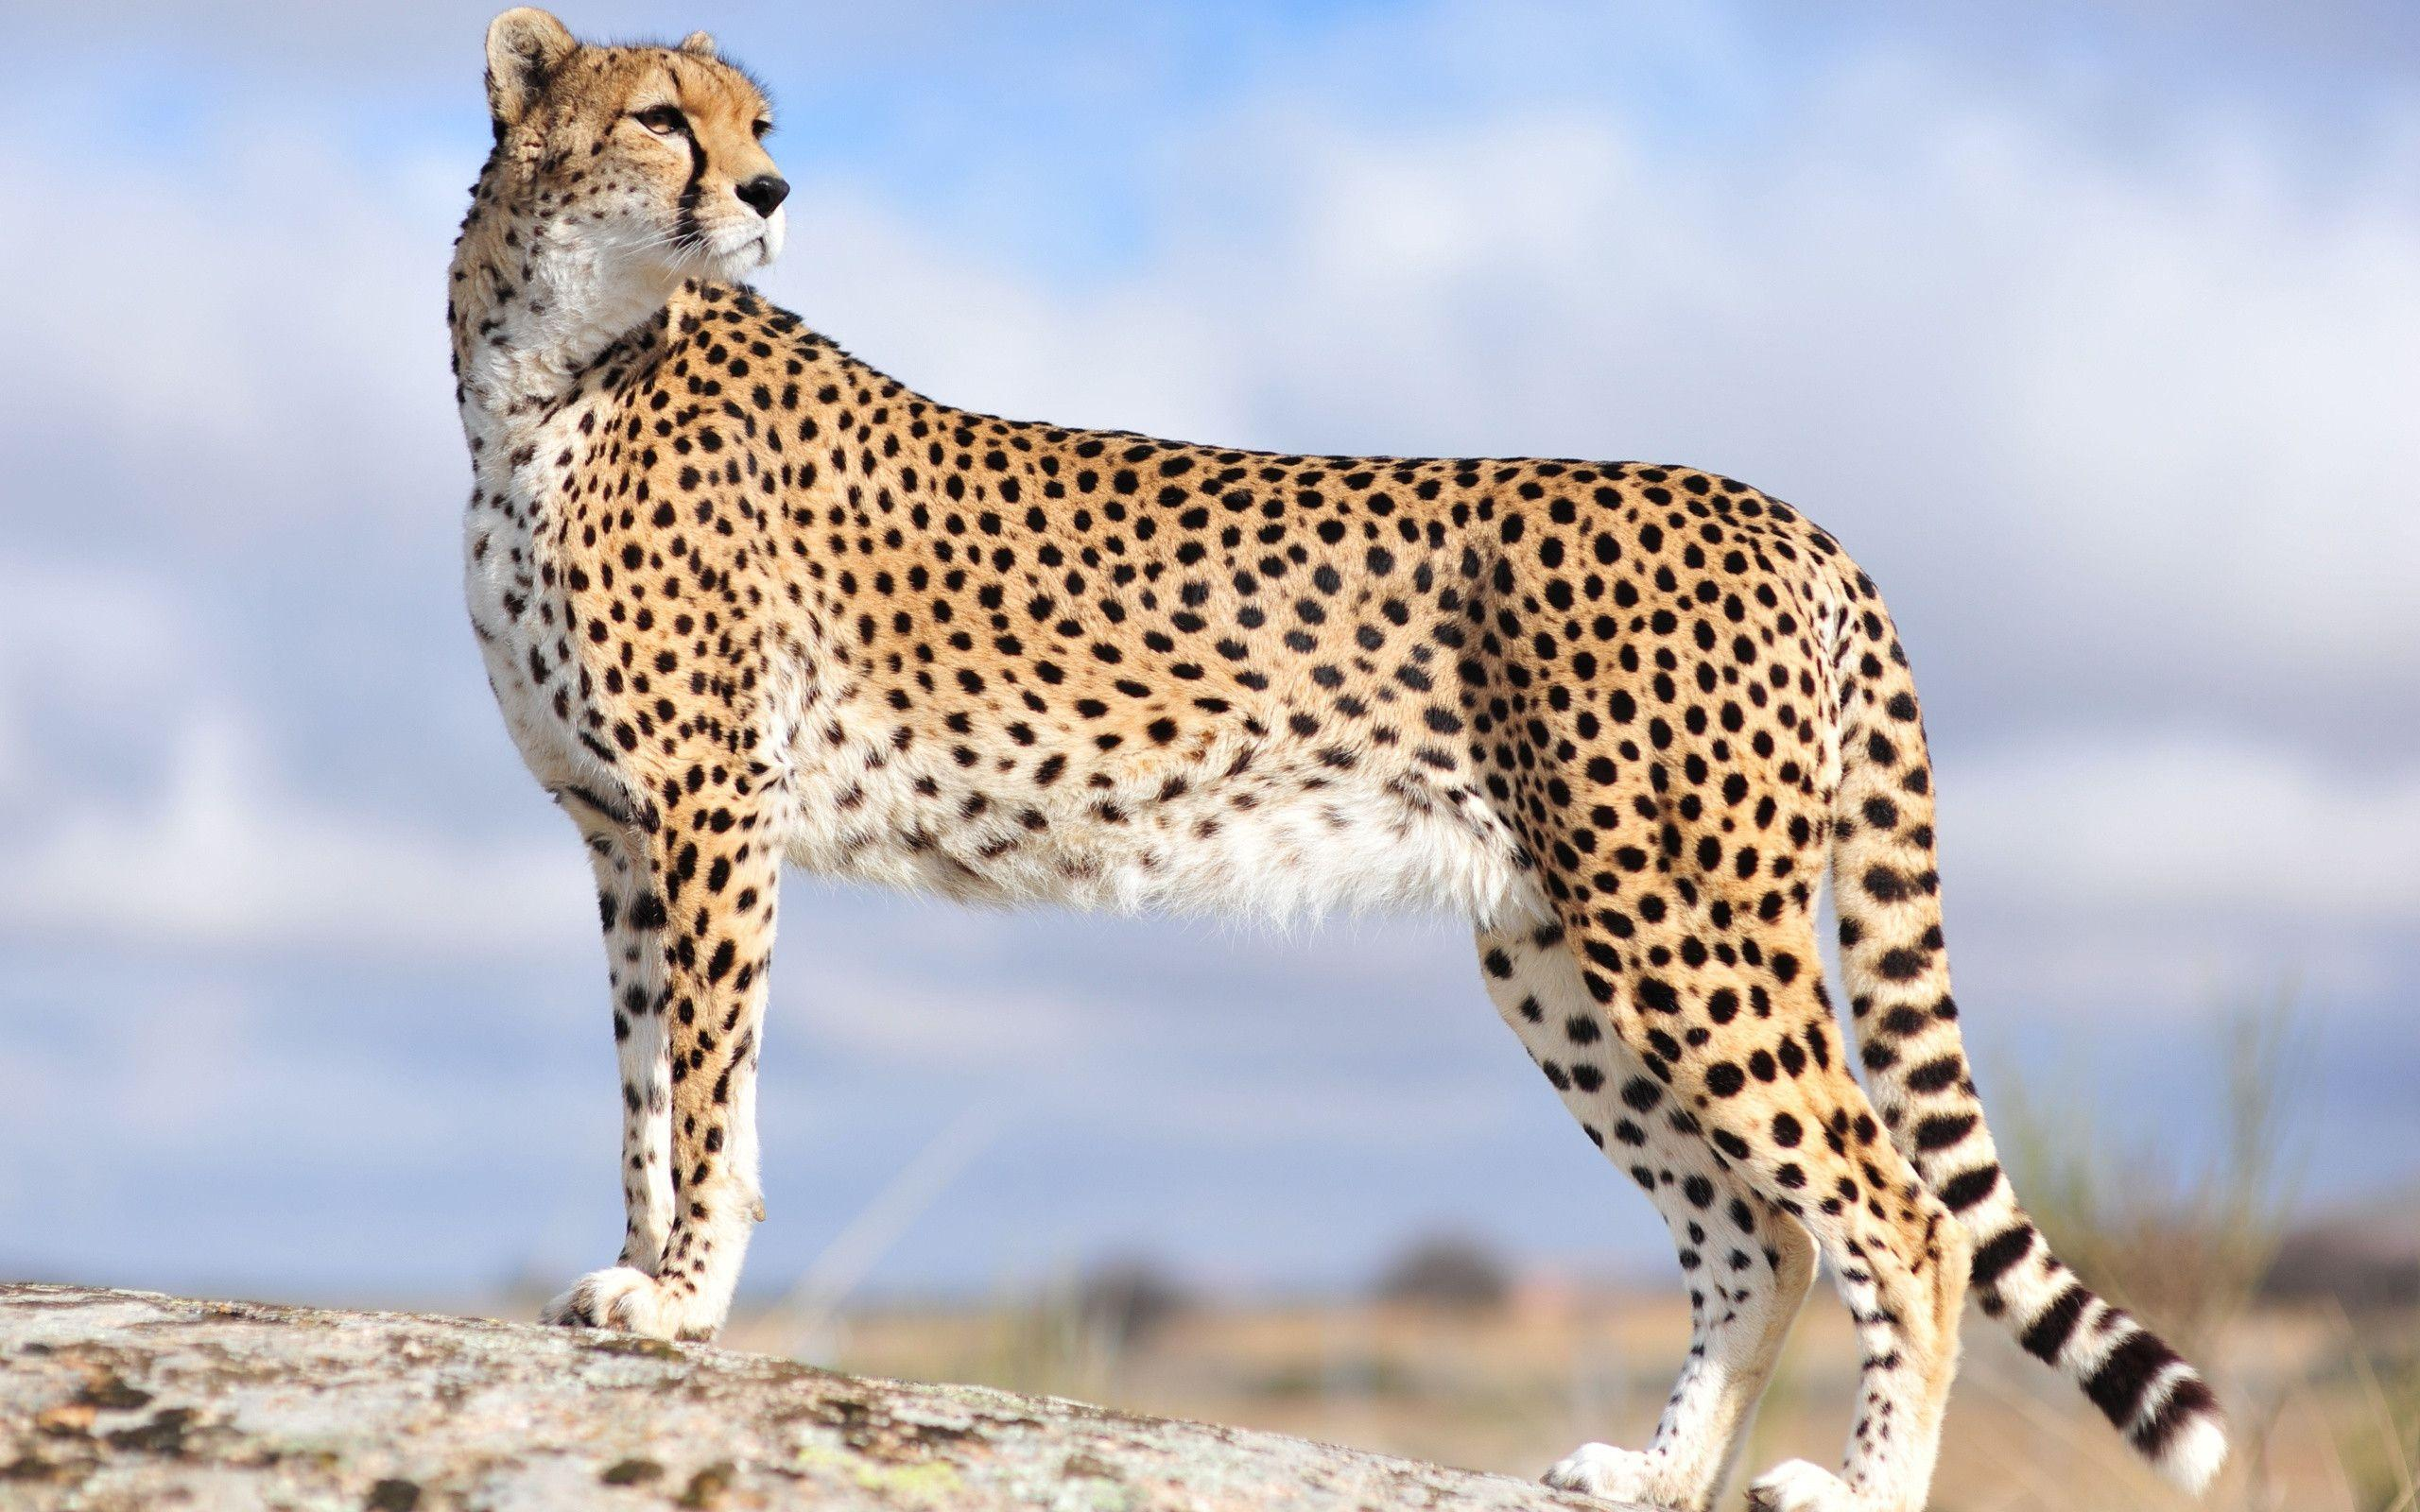 Cheetah Wallpapers - Full HD wallpaper search